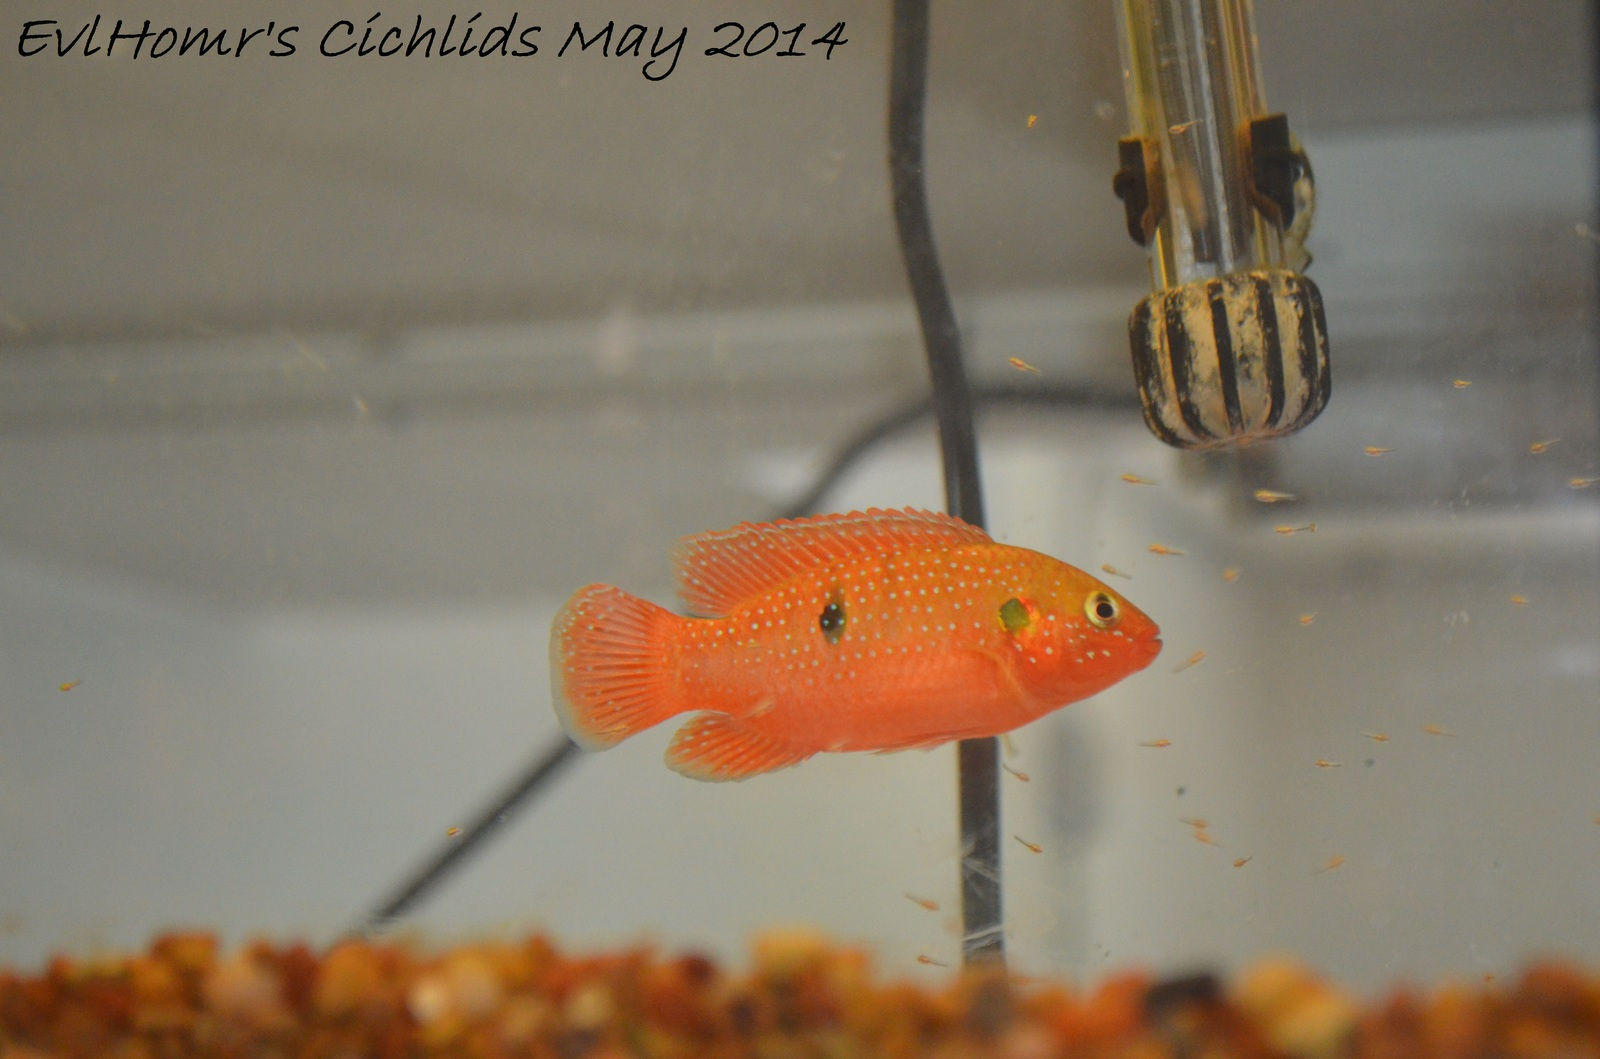 Jewel with fry | by EvlHomr's Cichlids